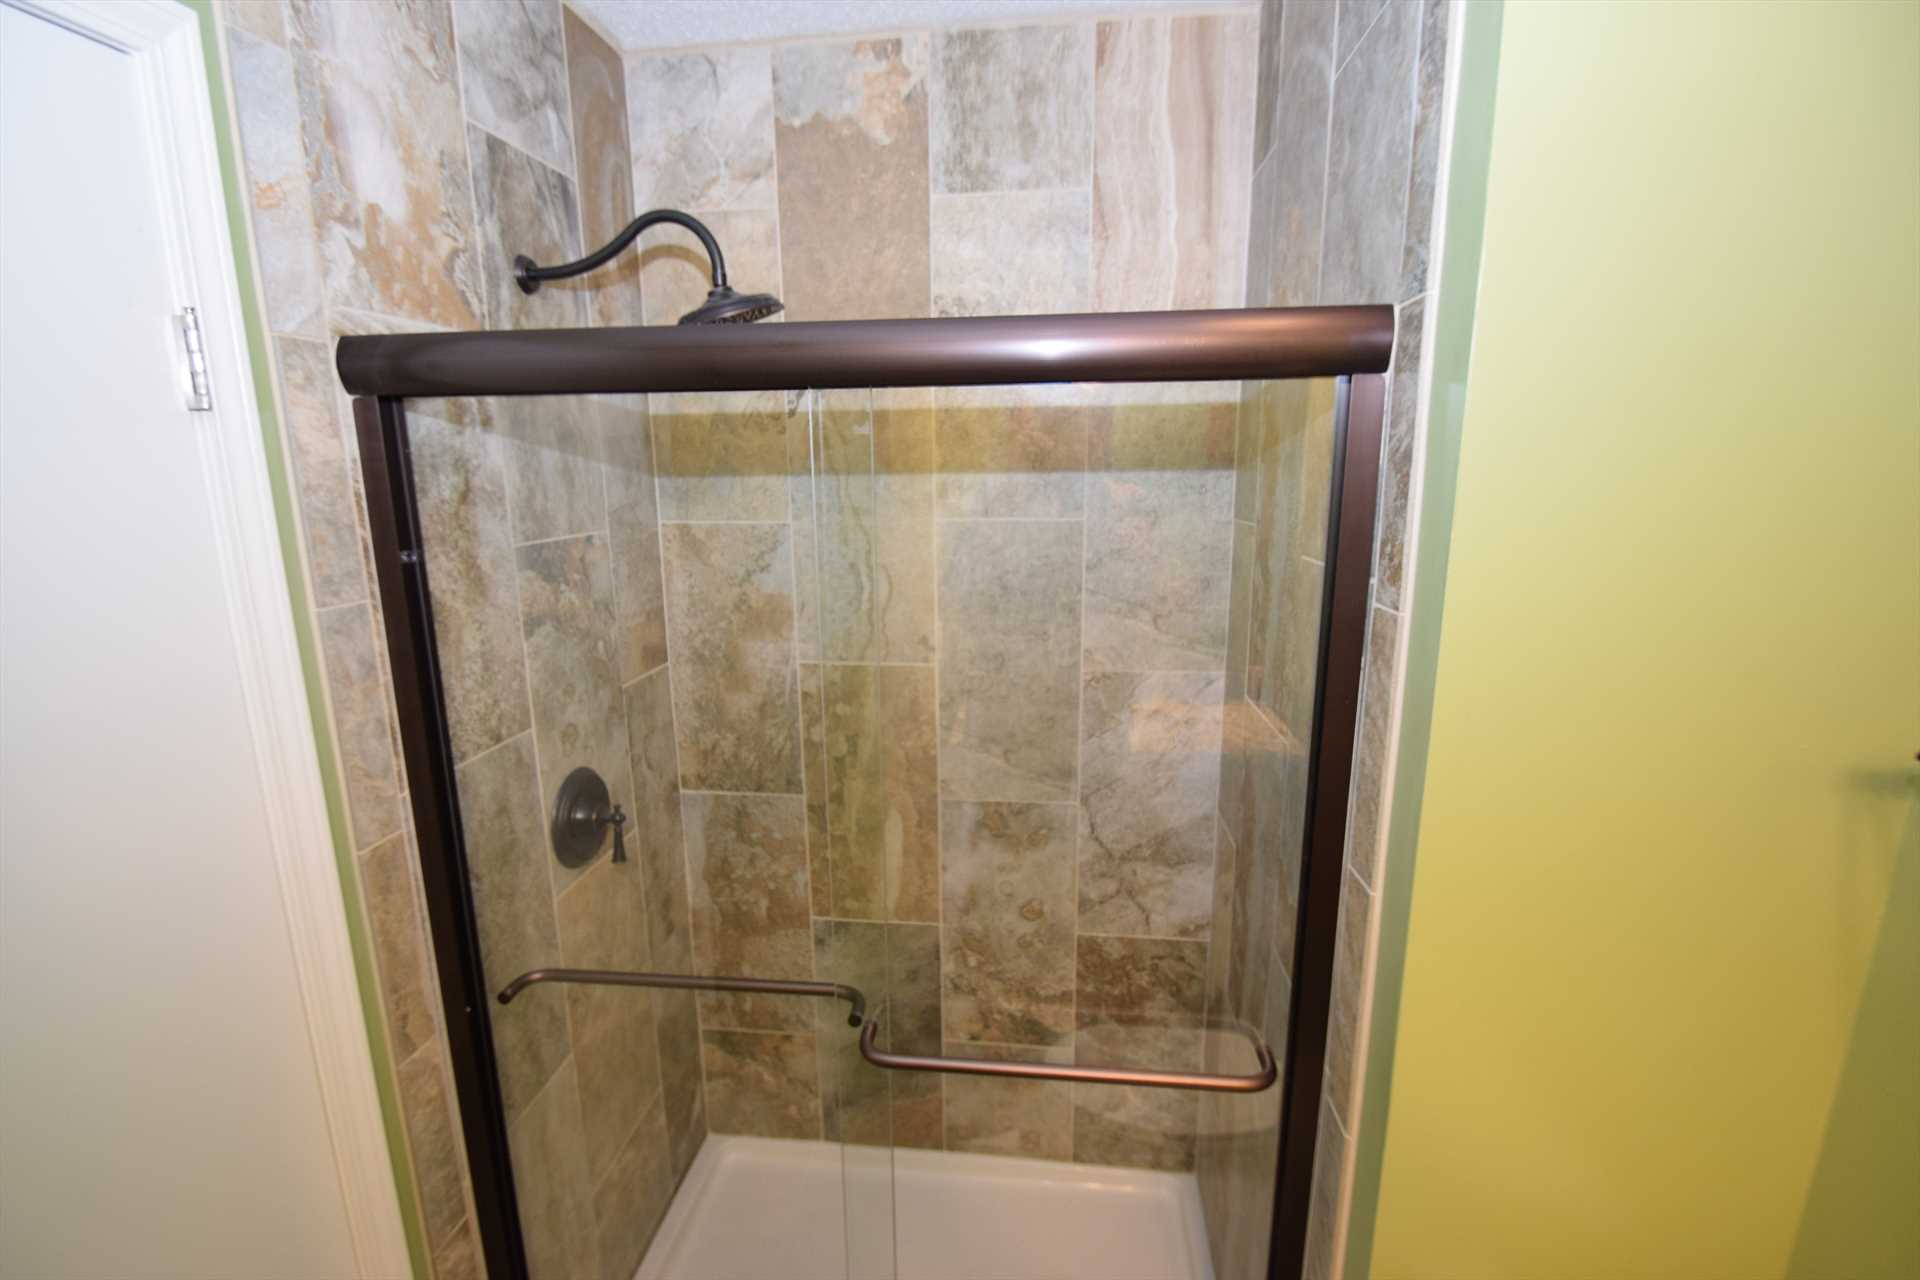 The master bath has a fancy tiled shower with tall fixtures